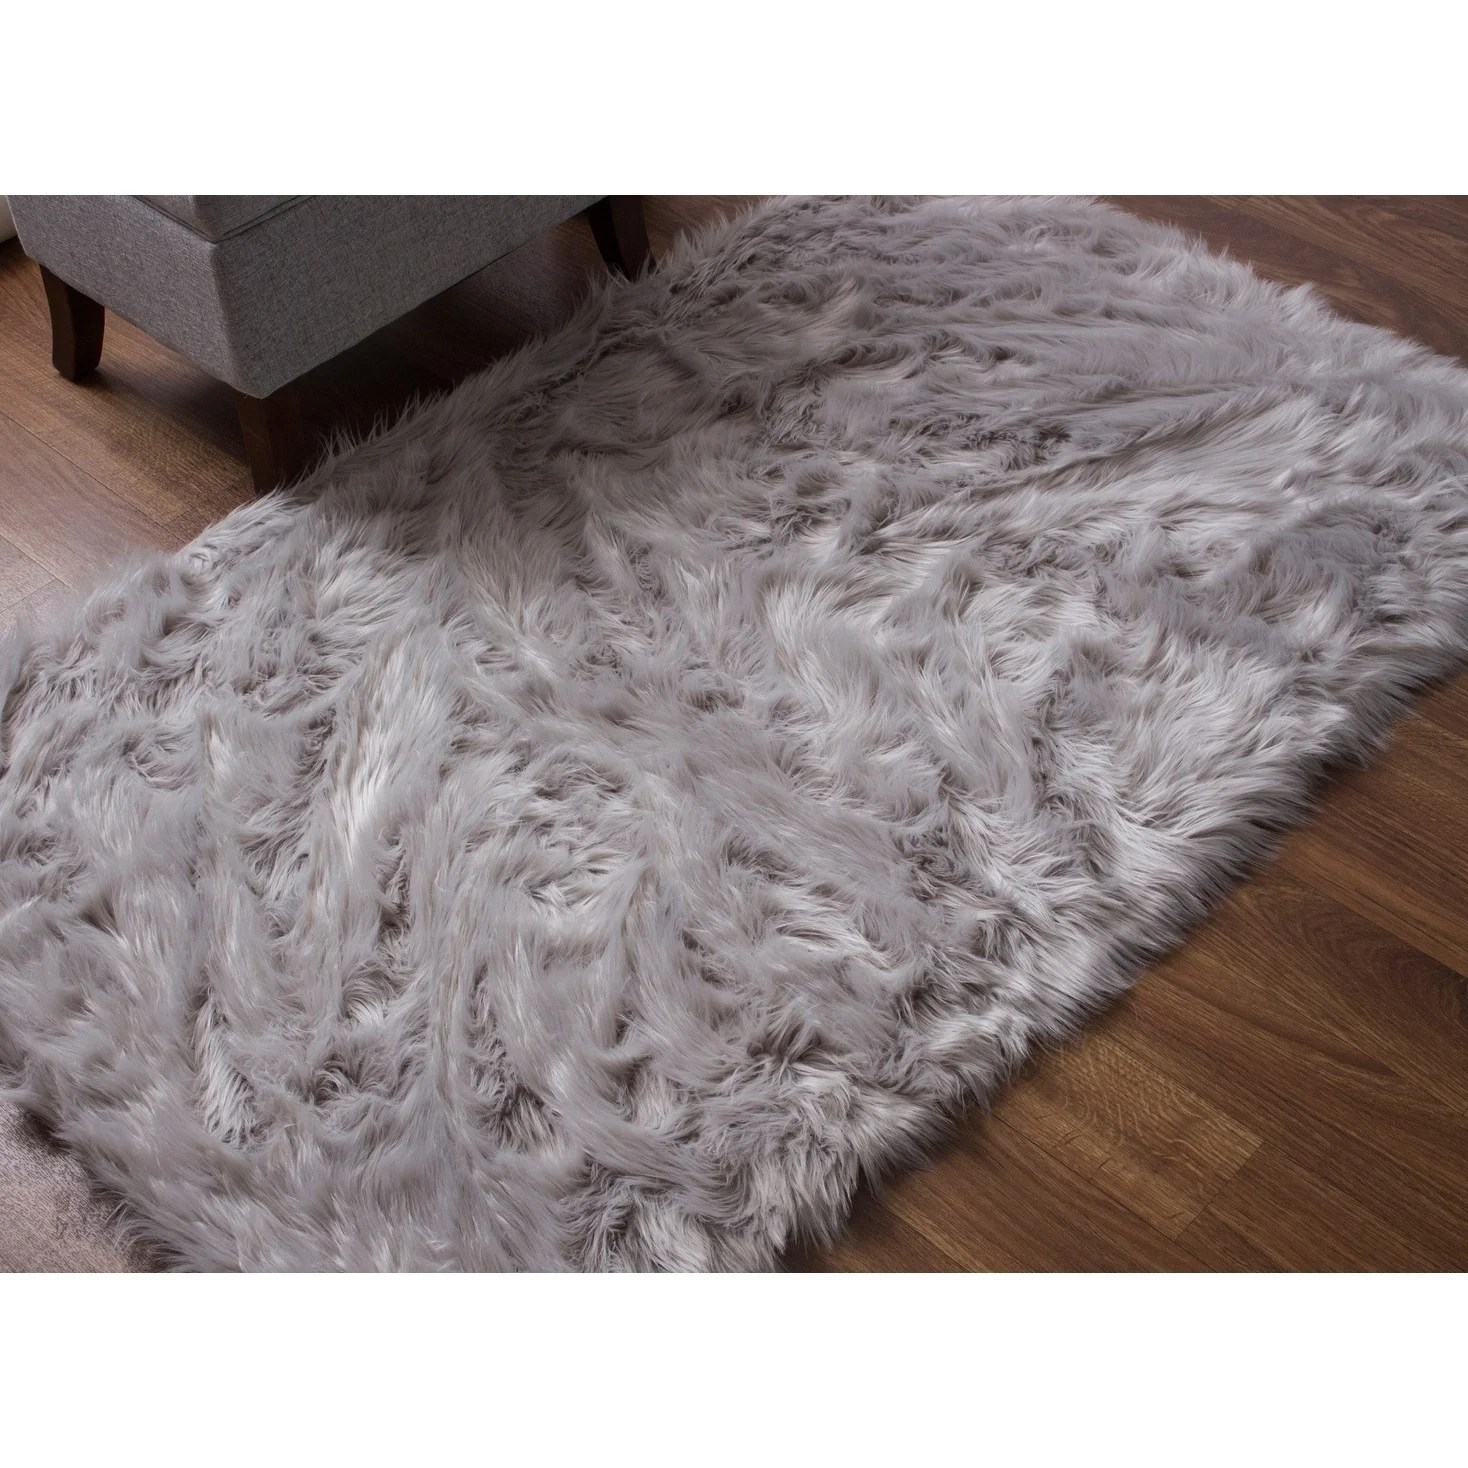 Garage Carpet Australia Buy Non Slip Area Rugs Online At Overstock Our Best Rugs Deals